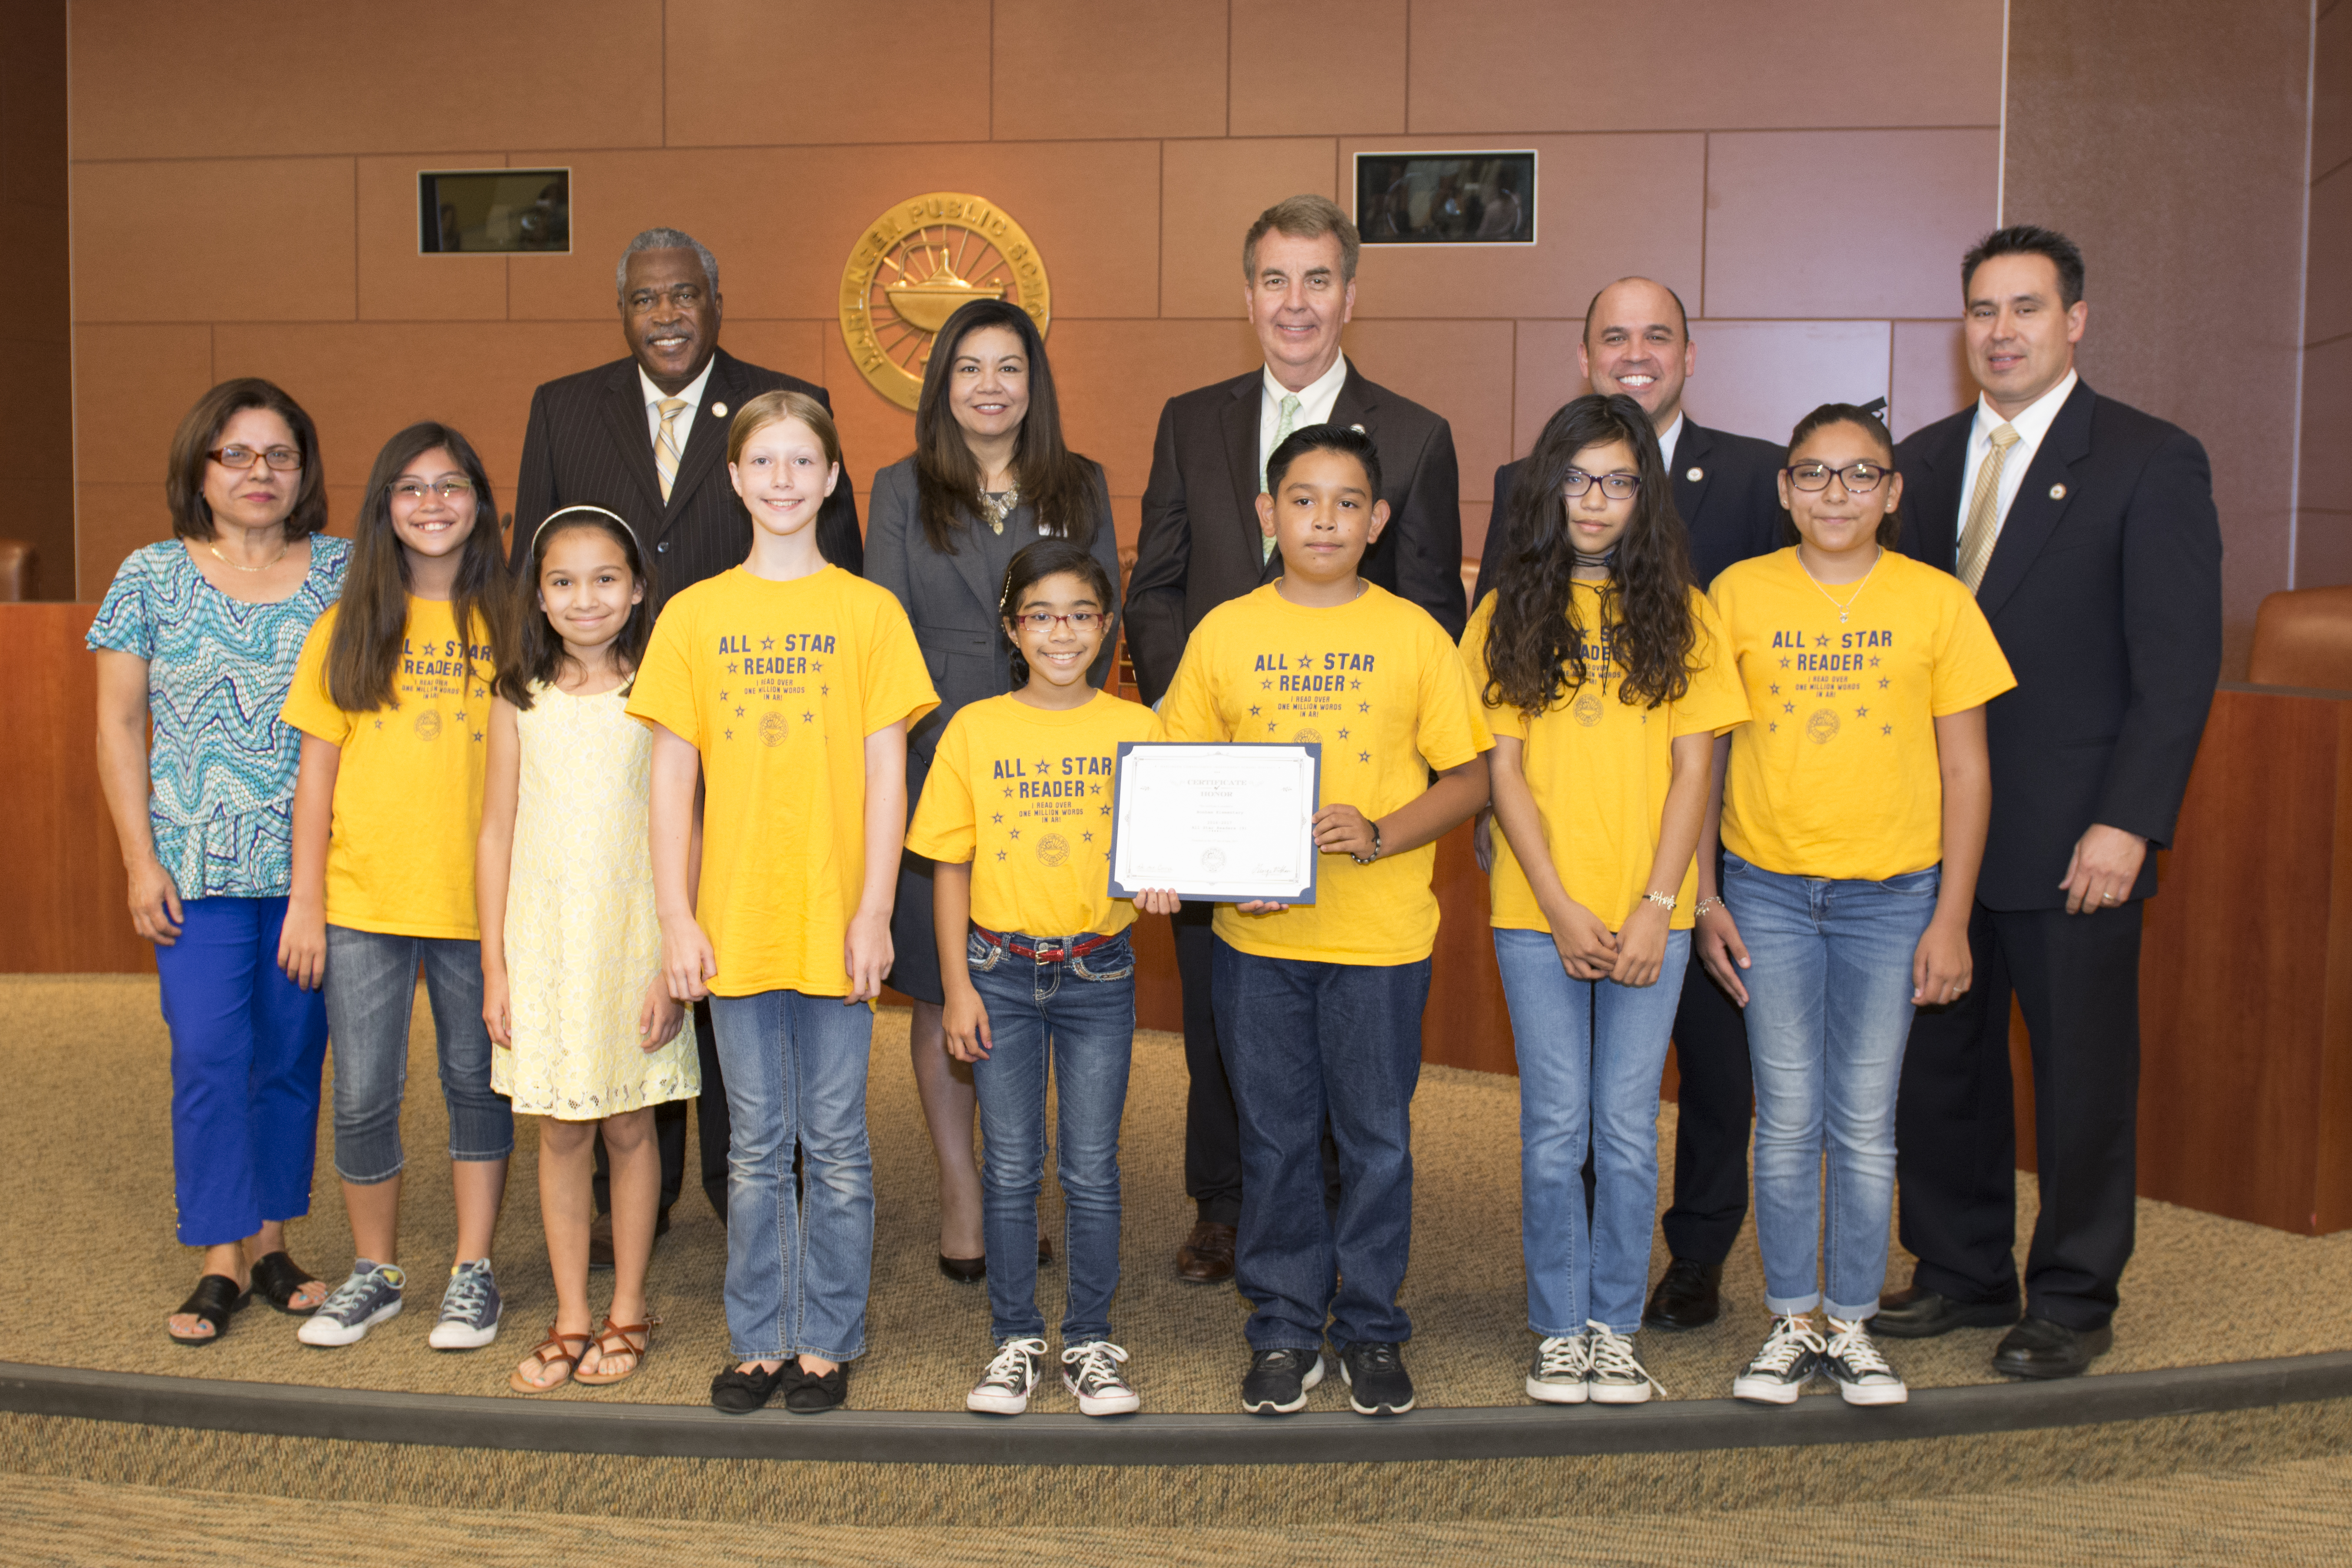 All-Star Readers recognized at June Board Meeting